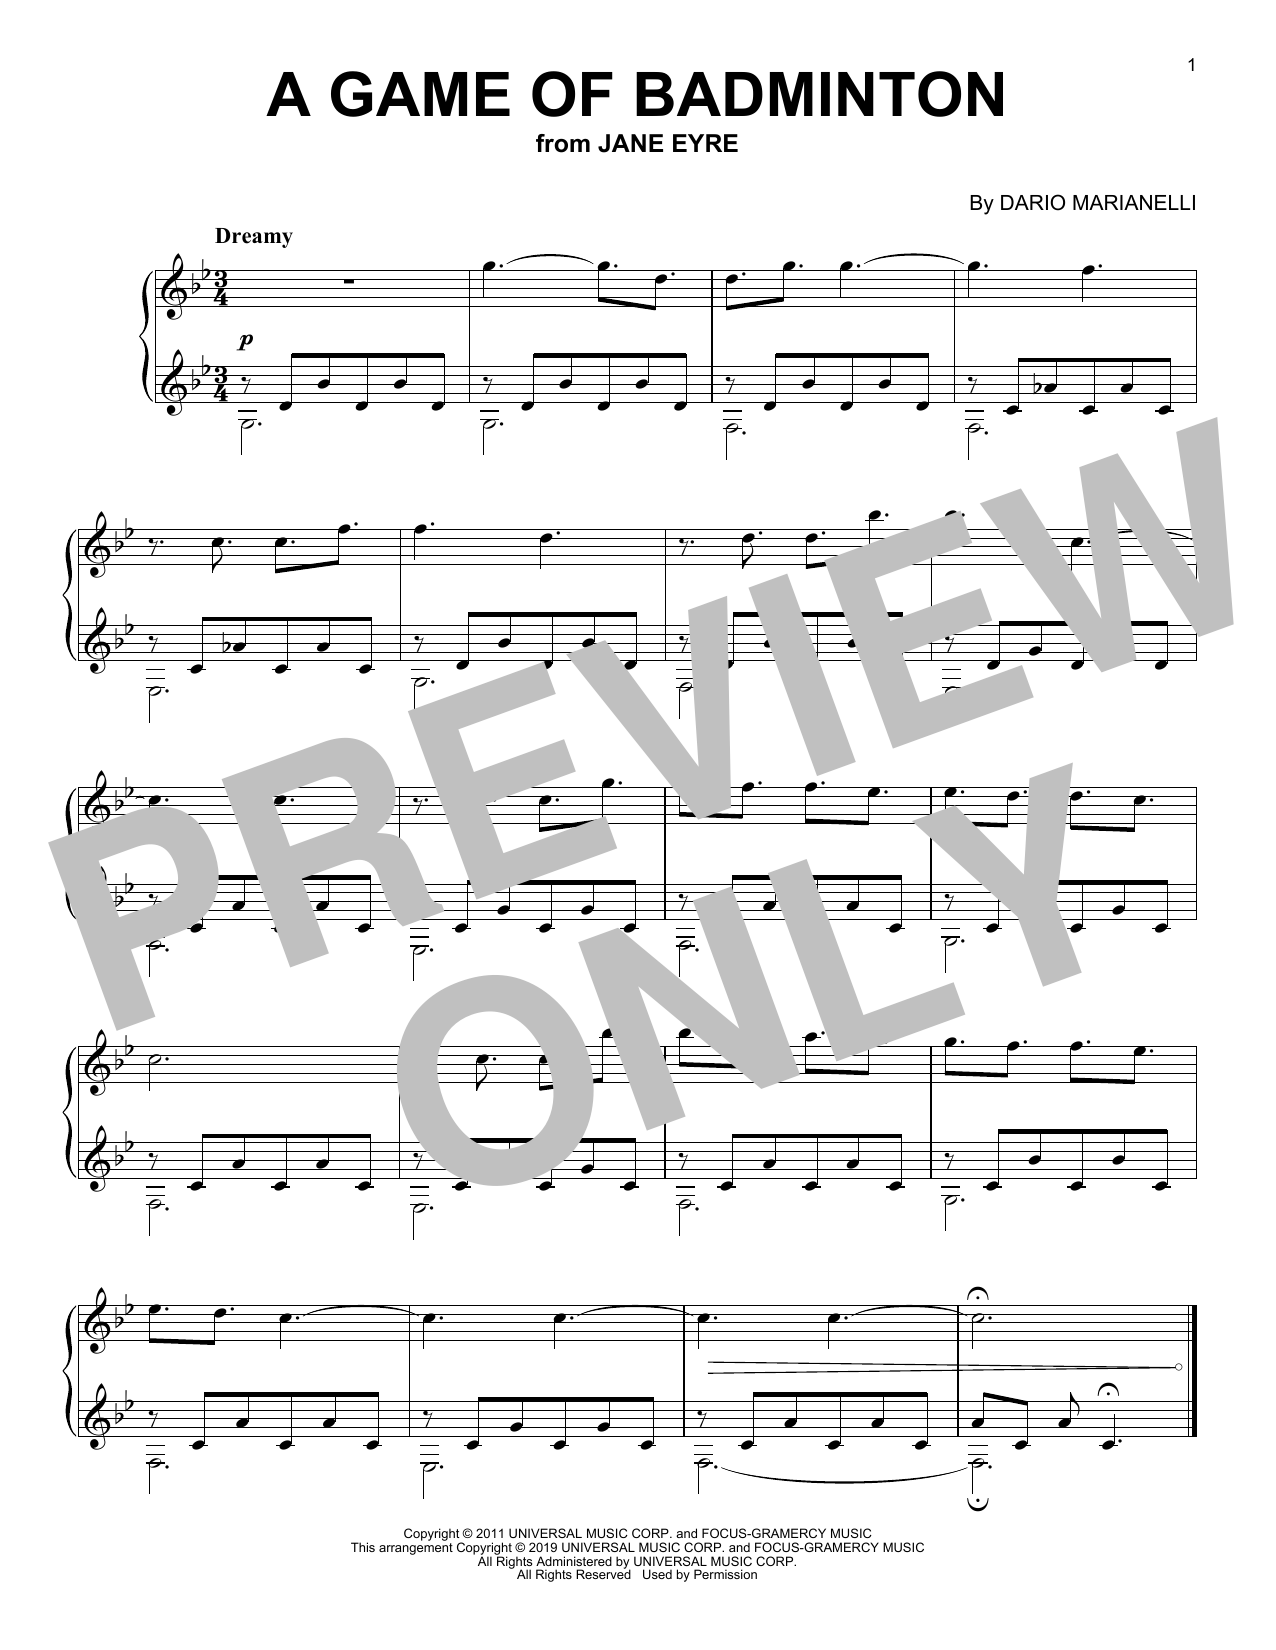 Dario Marianelli A Game Of Badminton (from Jane Eyre) sheet music notes printable PDF score